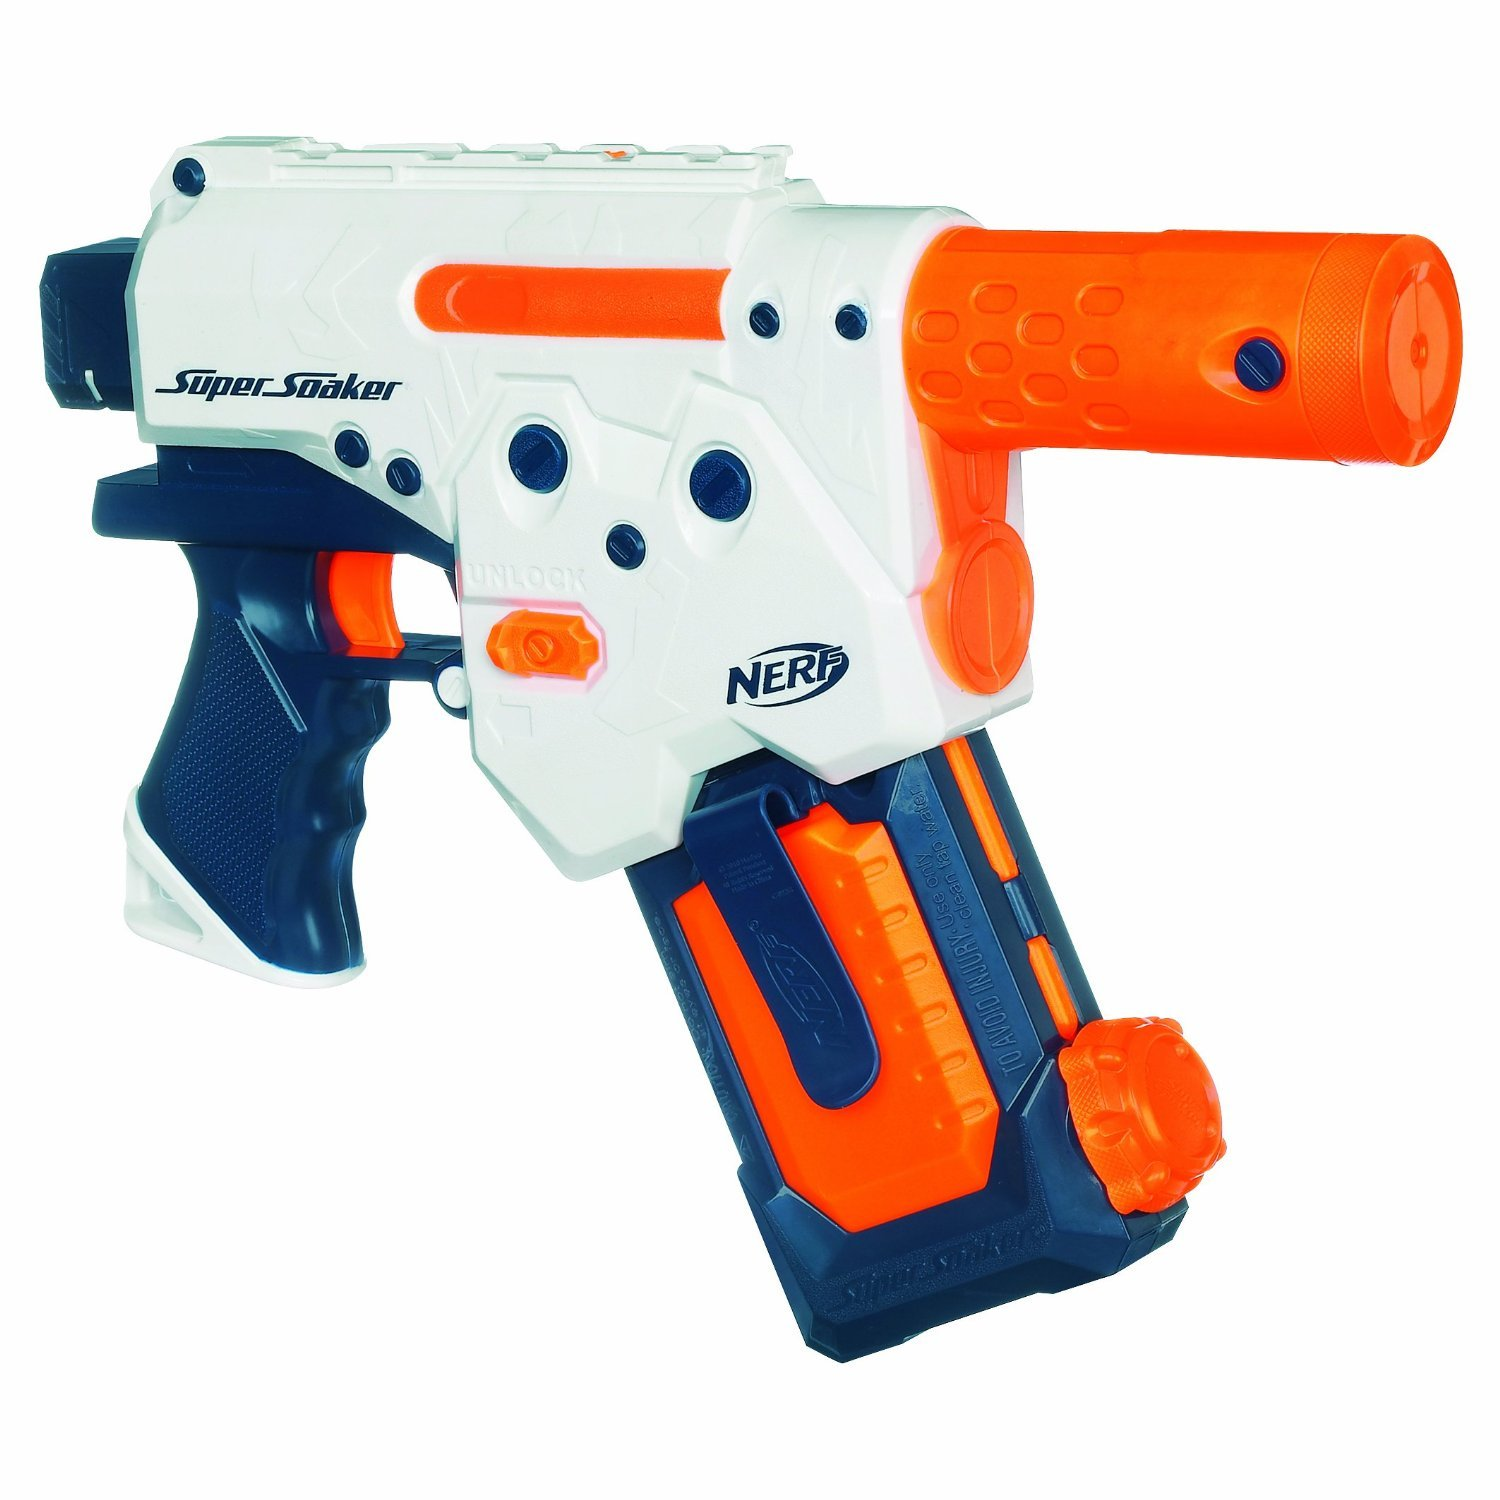 Nerf has long been known for making some of the most impressive toy  weaponry kids can buy, but its foam dart blasters aren't exactly known for  their power ...